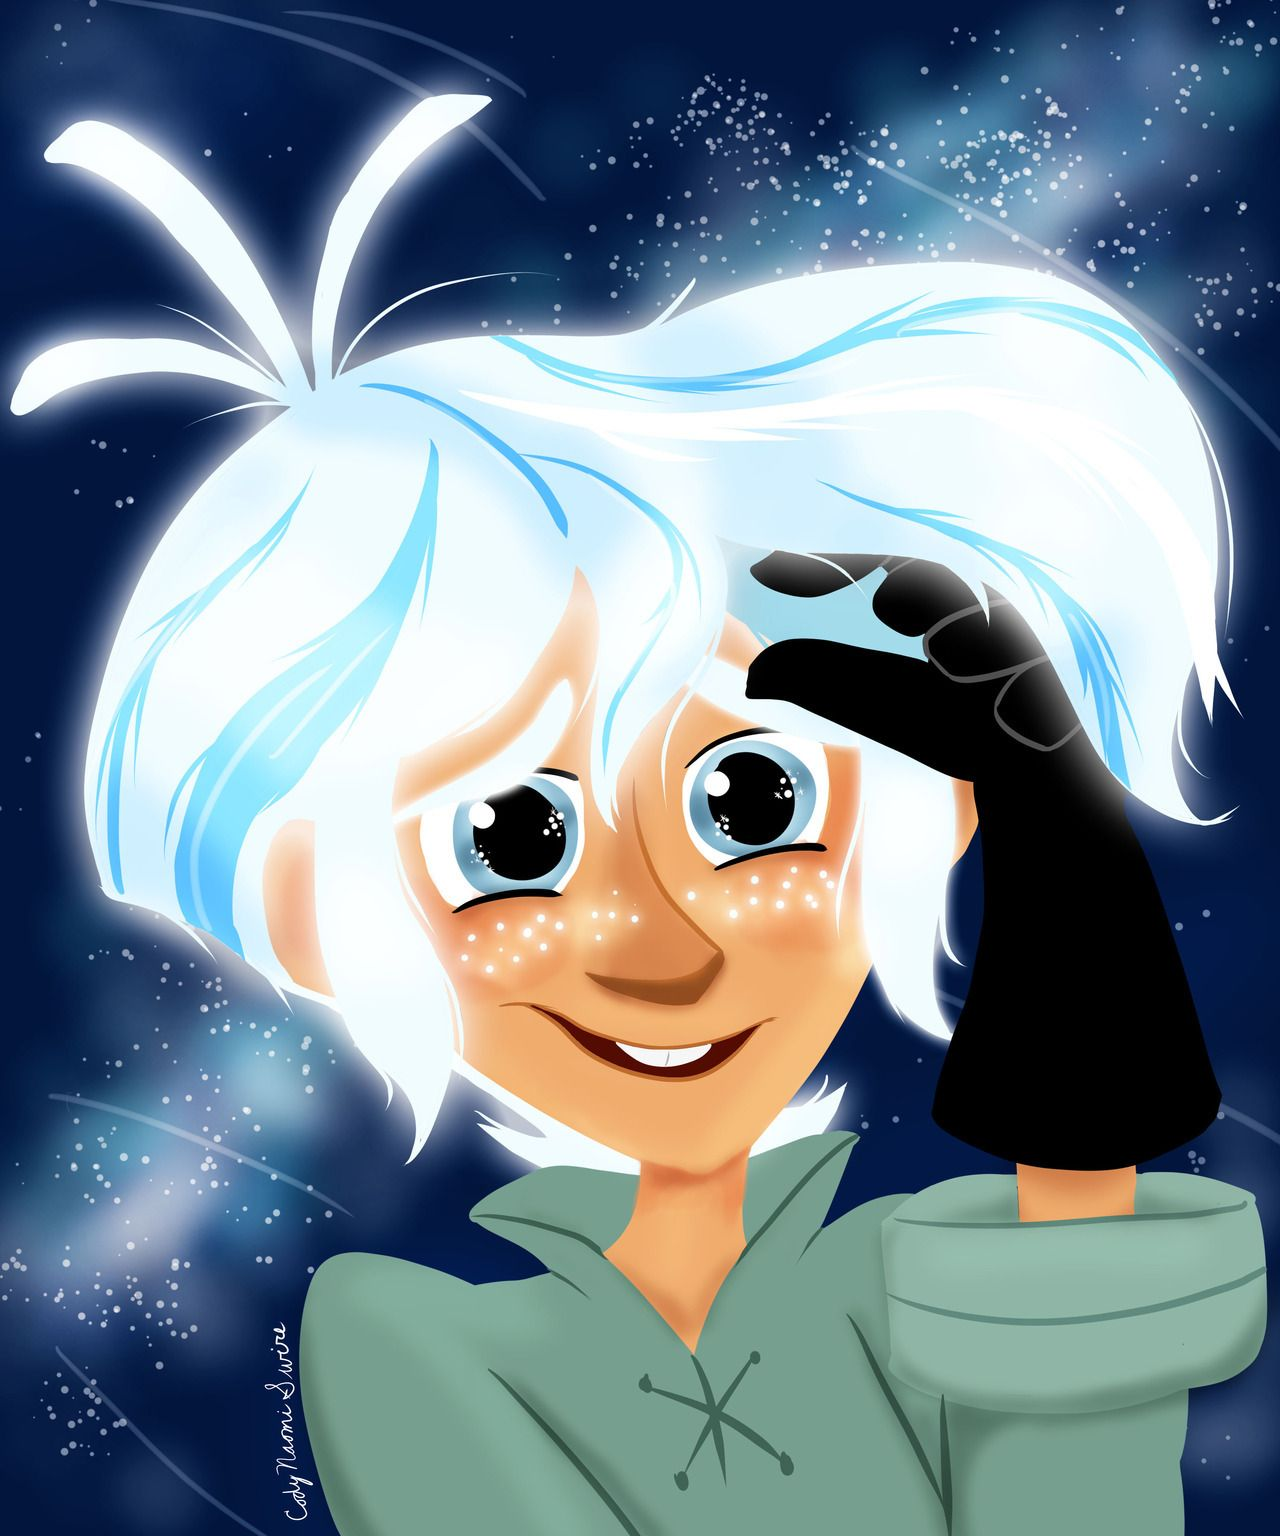 Moon Varian Portrait Just Really Wanted To Draw A Happy Moon Varian And Wanted To Draw Some Floofy Glowing Hair From The Disney Tangled Anime Art Blog